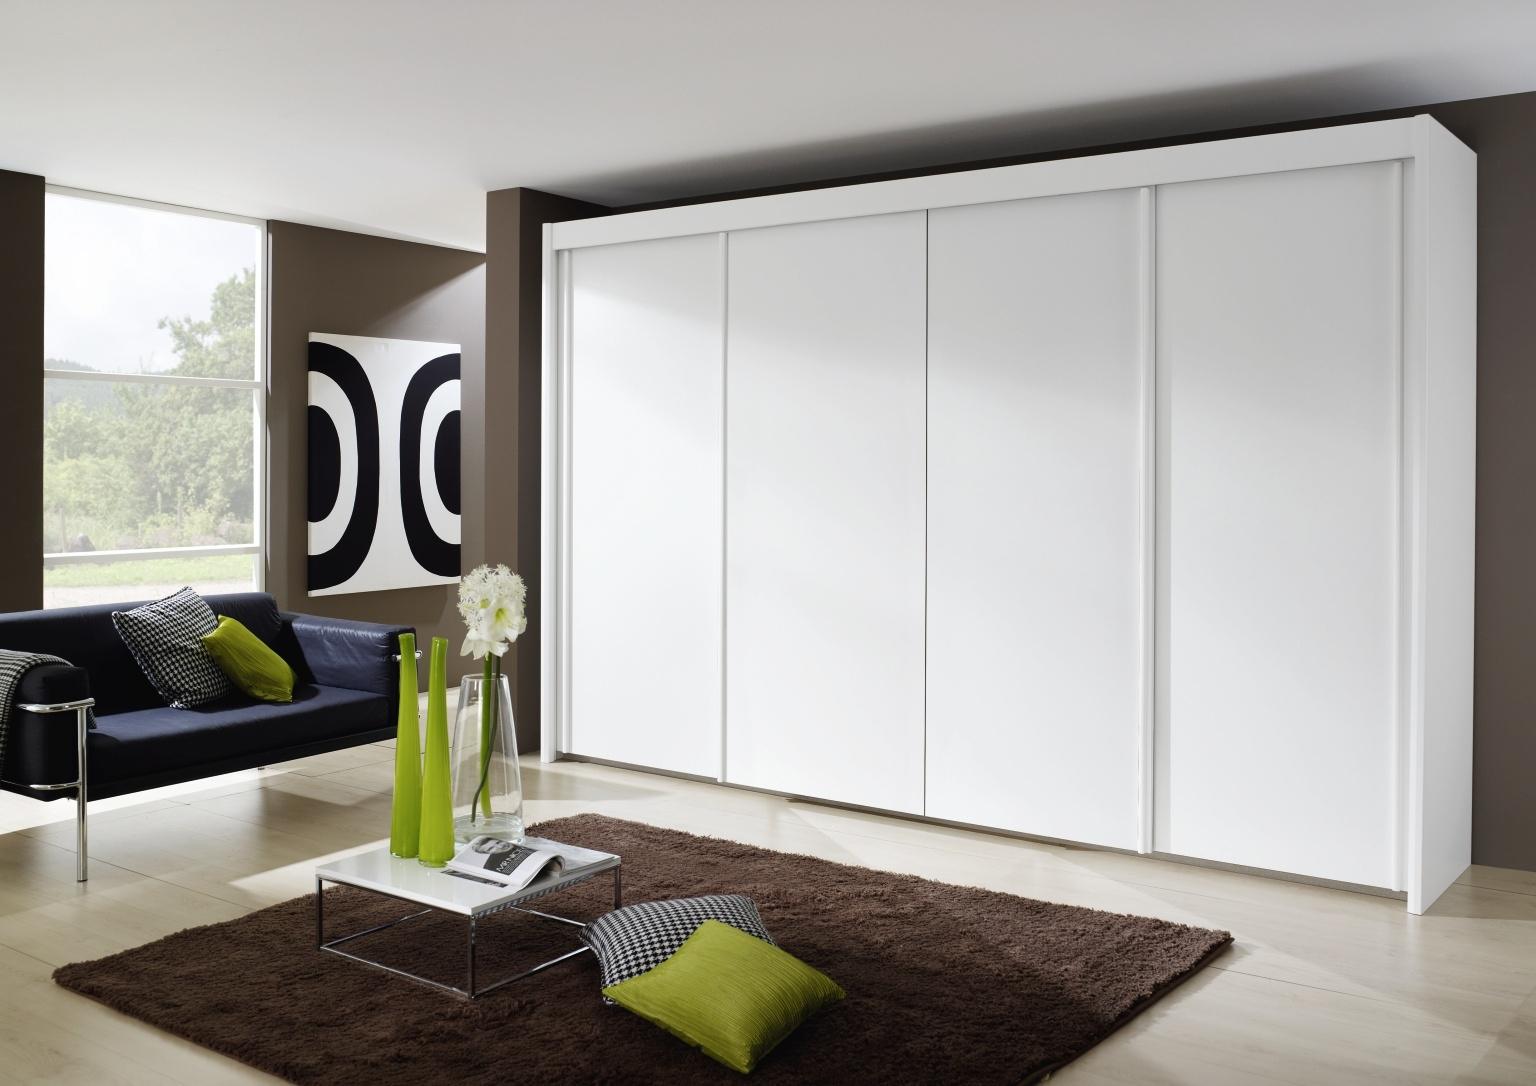 Rauch Imperial 4 Door Sliding Wardrobe in White - W 350cm